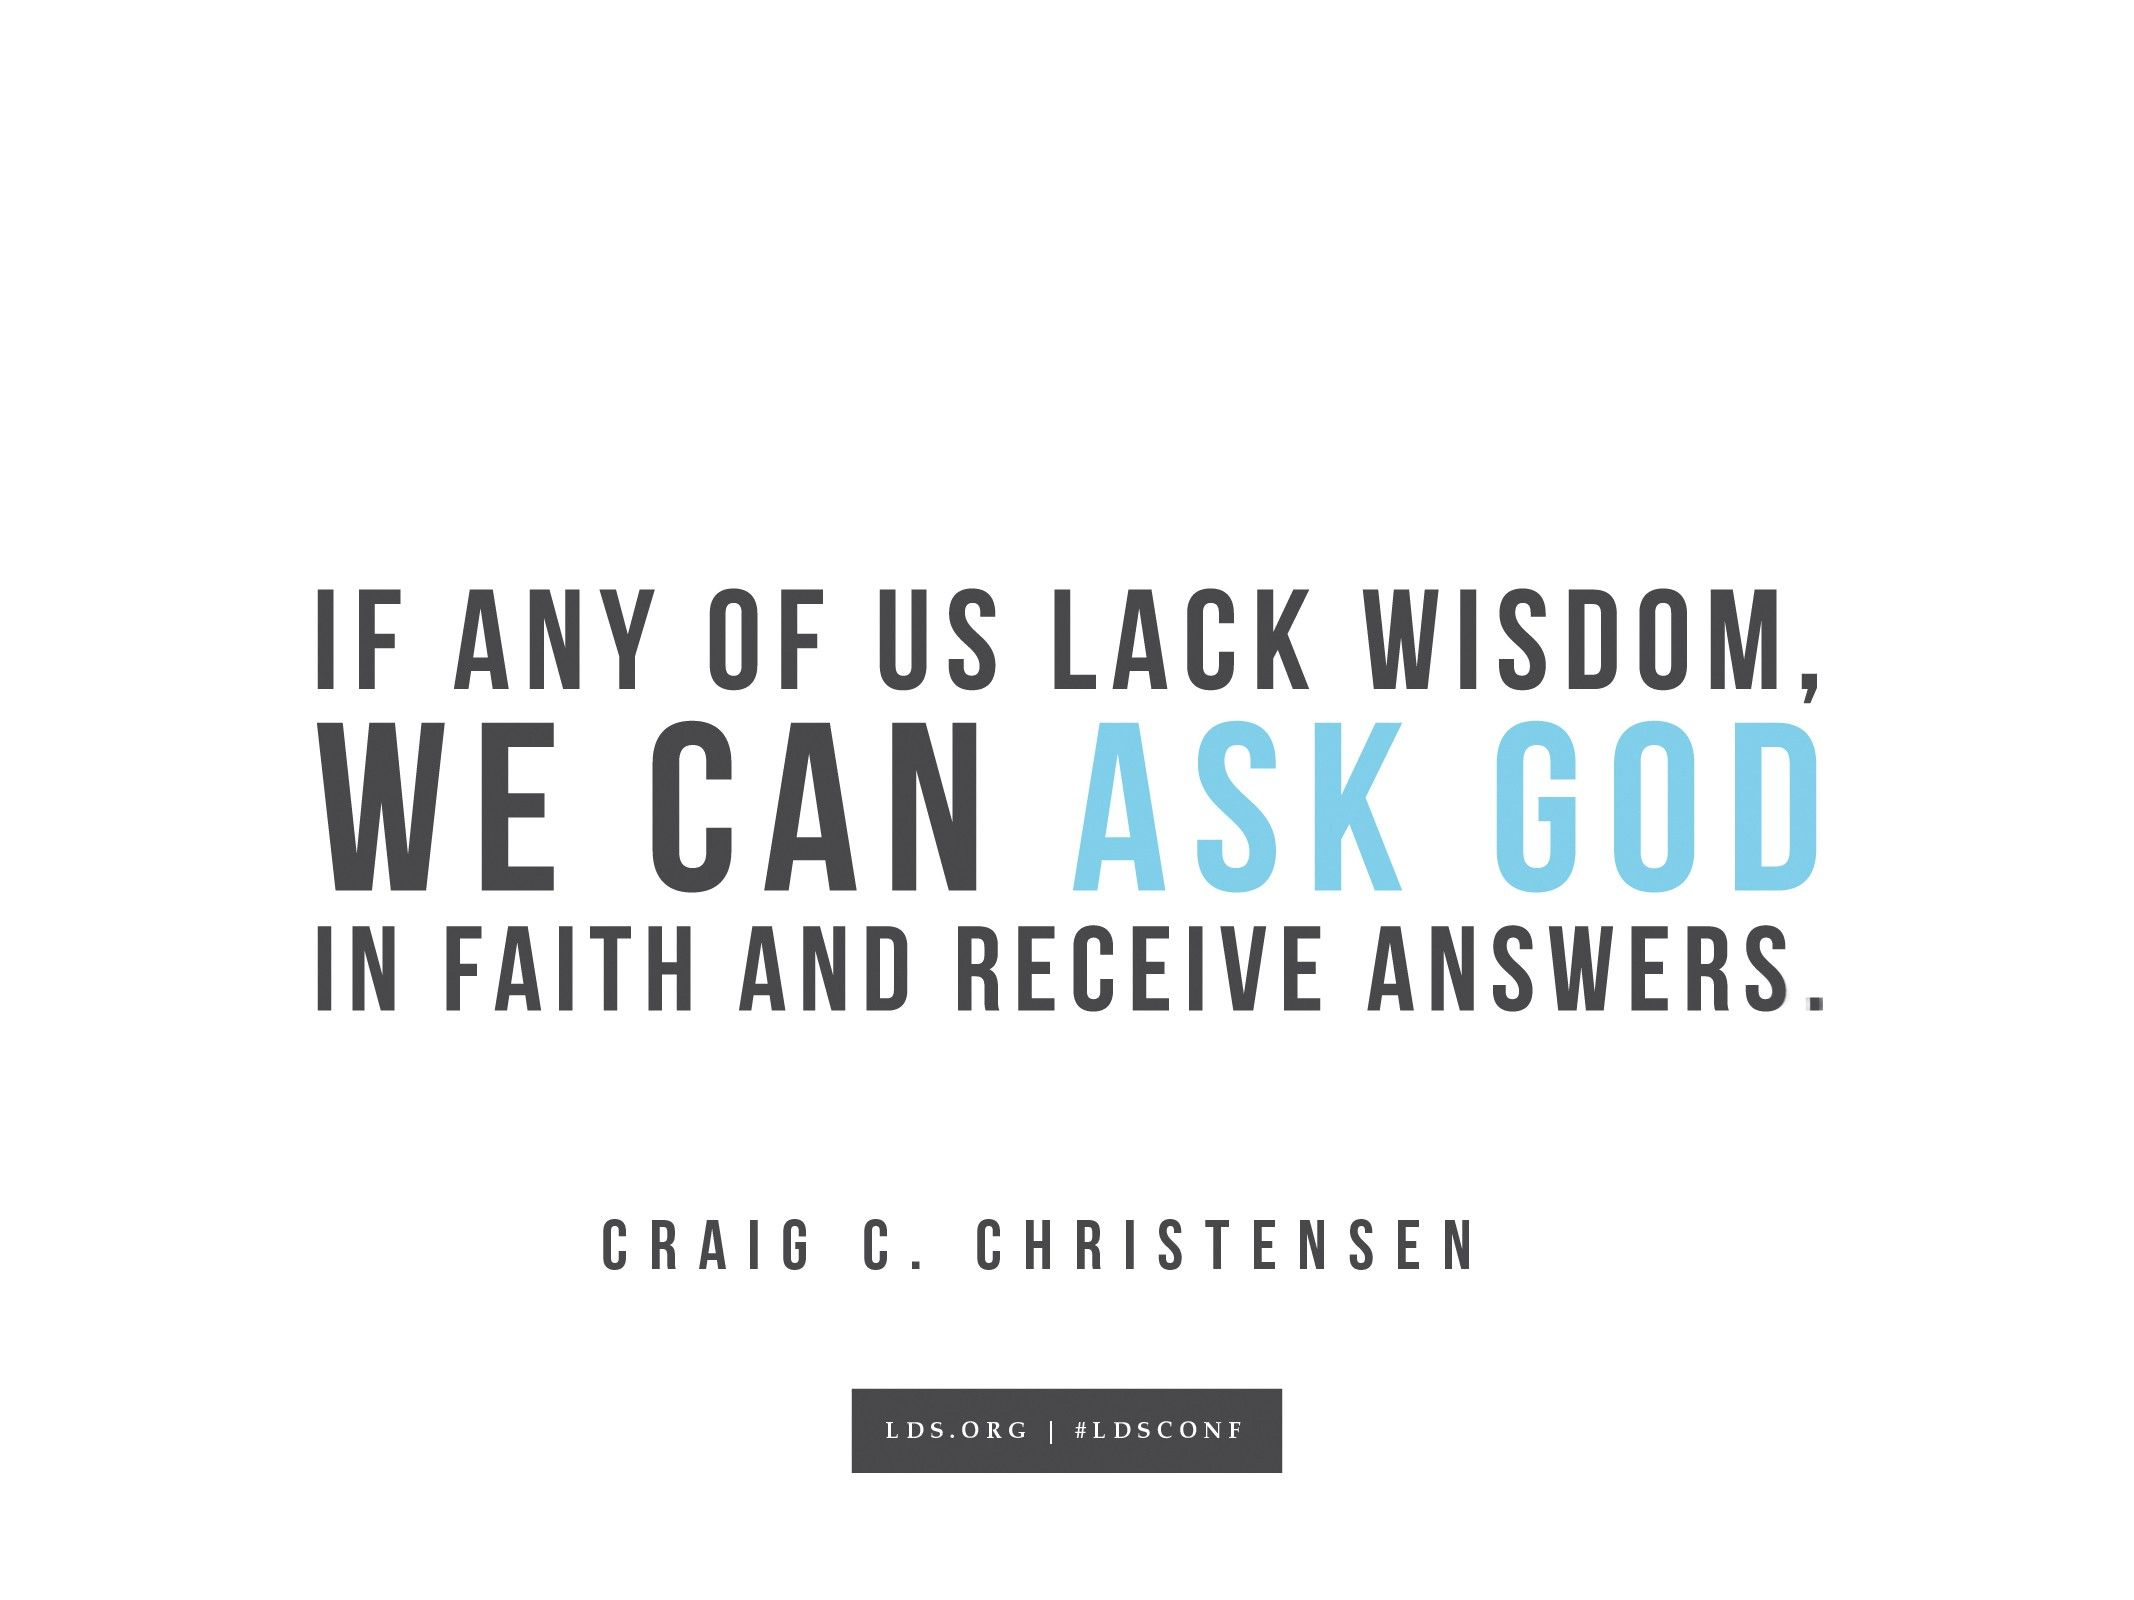 """""""If any of us lack wisdom, we can ask God in faith and receive answers.""""—Craig C. Christensen, """"A Choice Seer Will I Raise Up"""""""